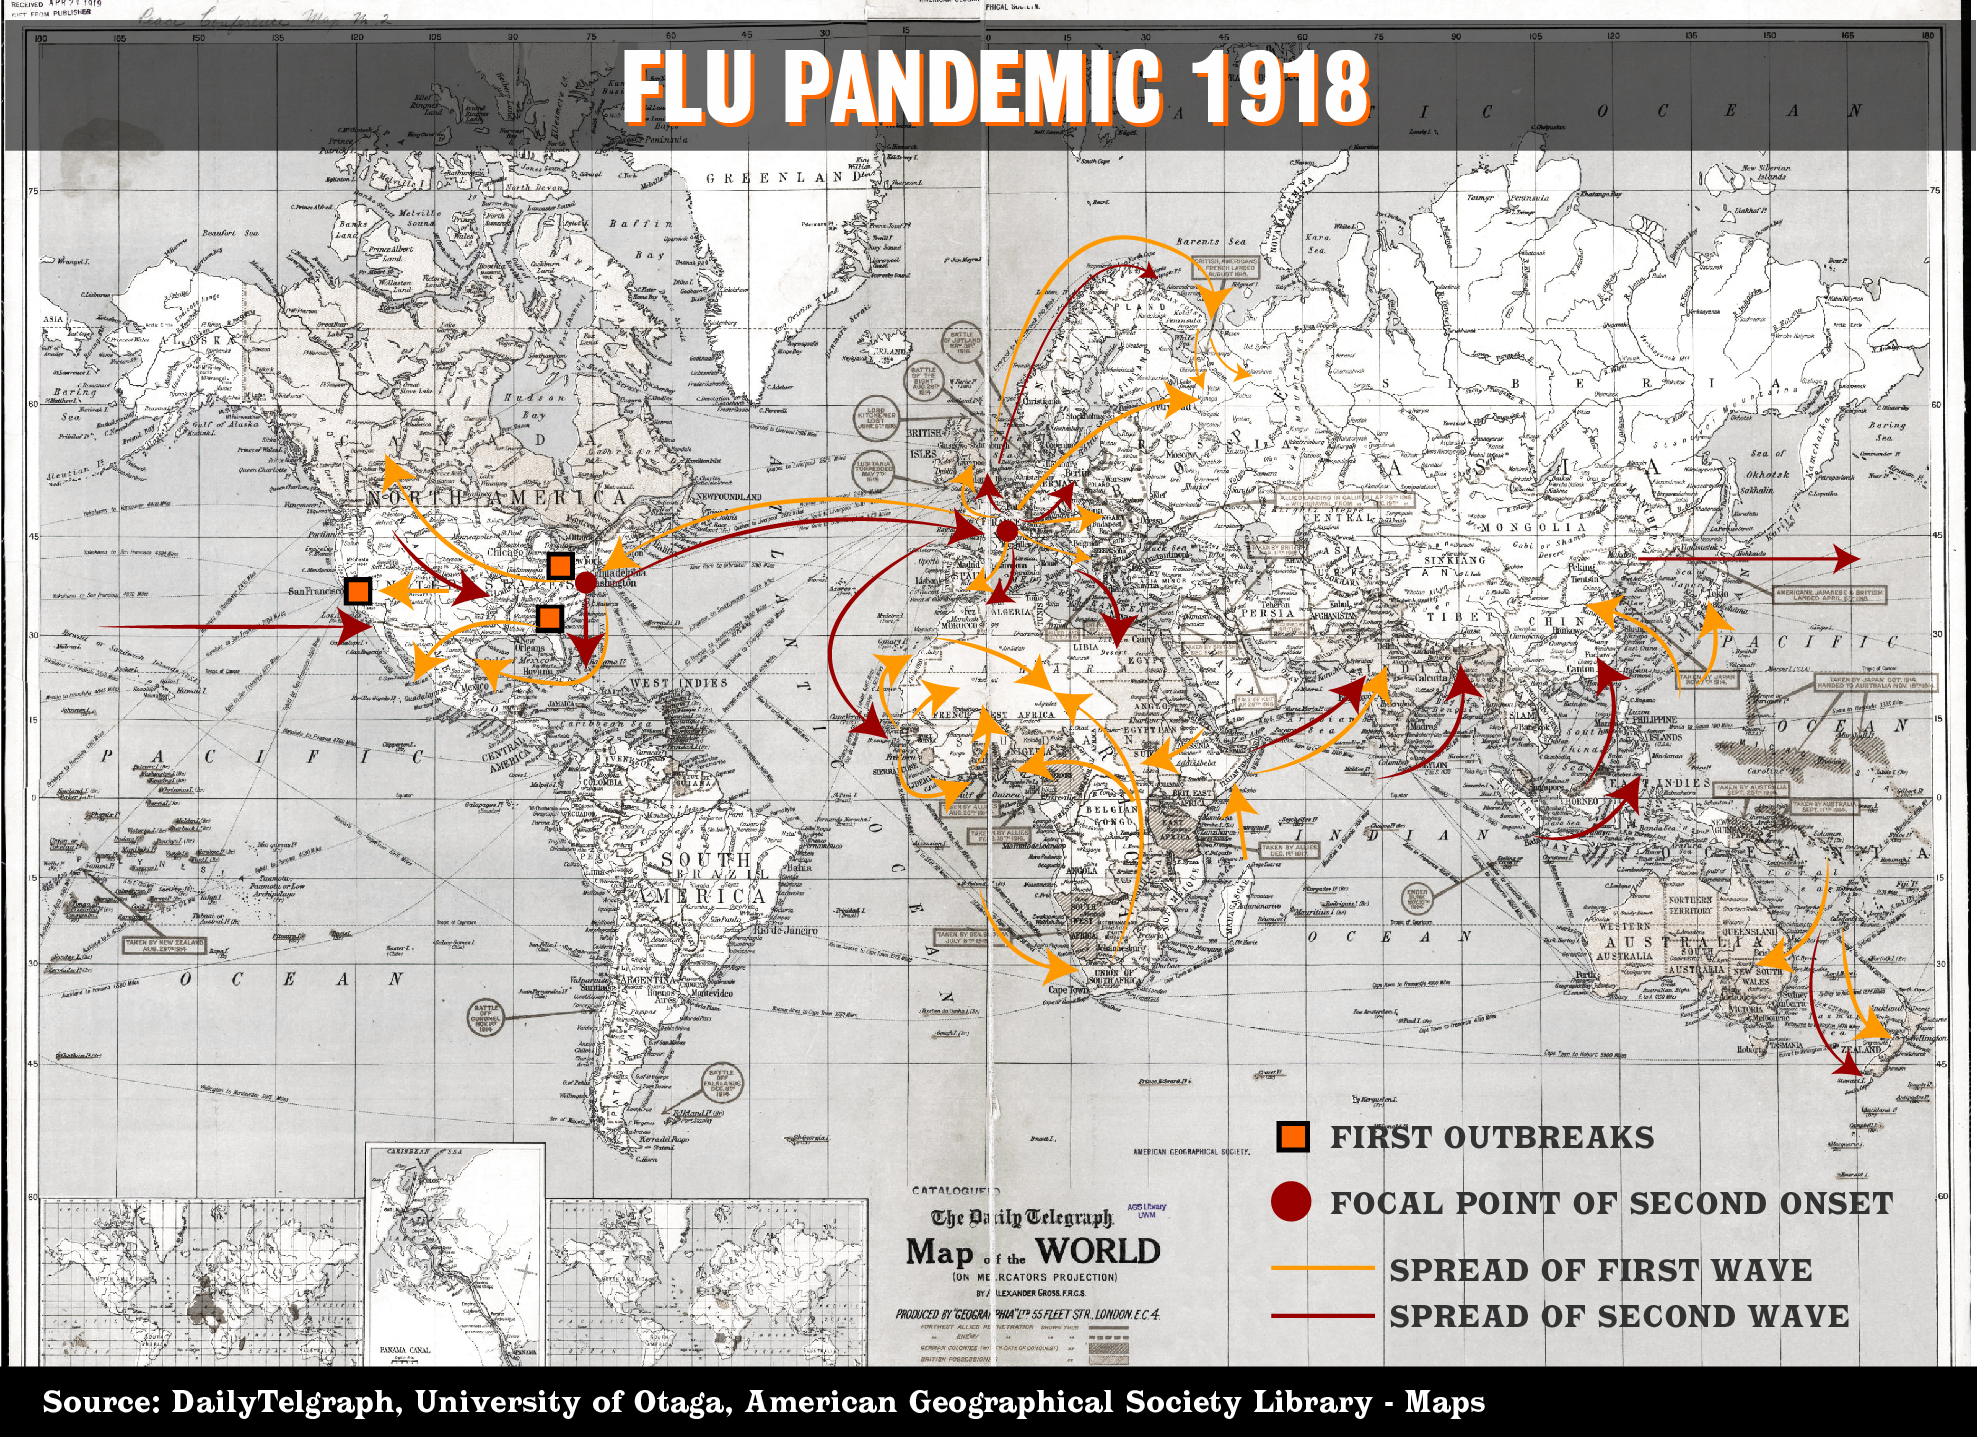 DO NOT USE: INTERACTIVE: Flu pandemic 1918 map